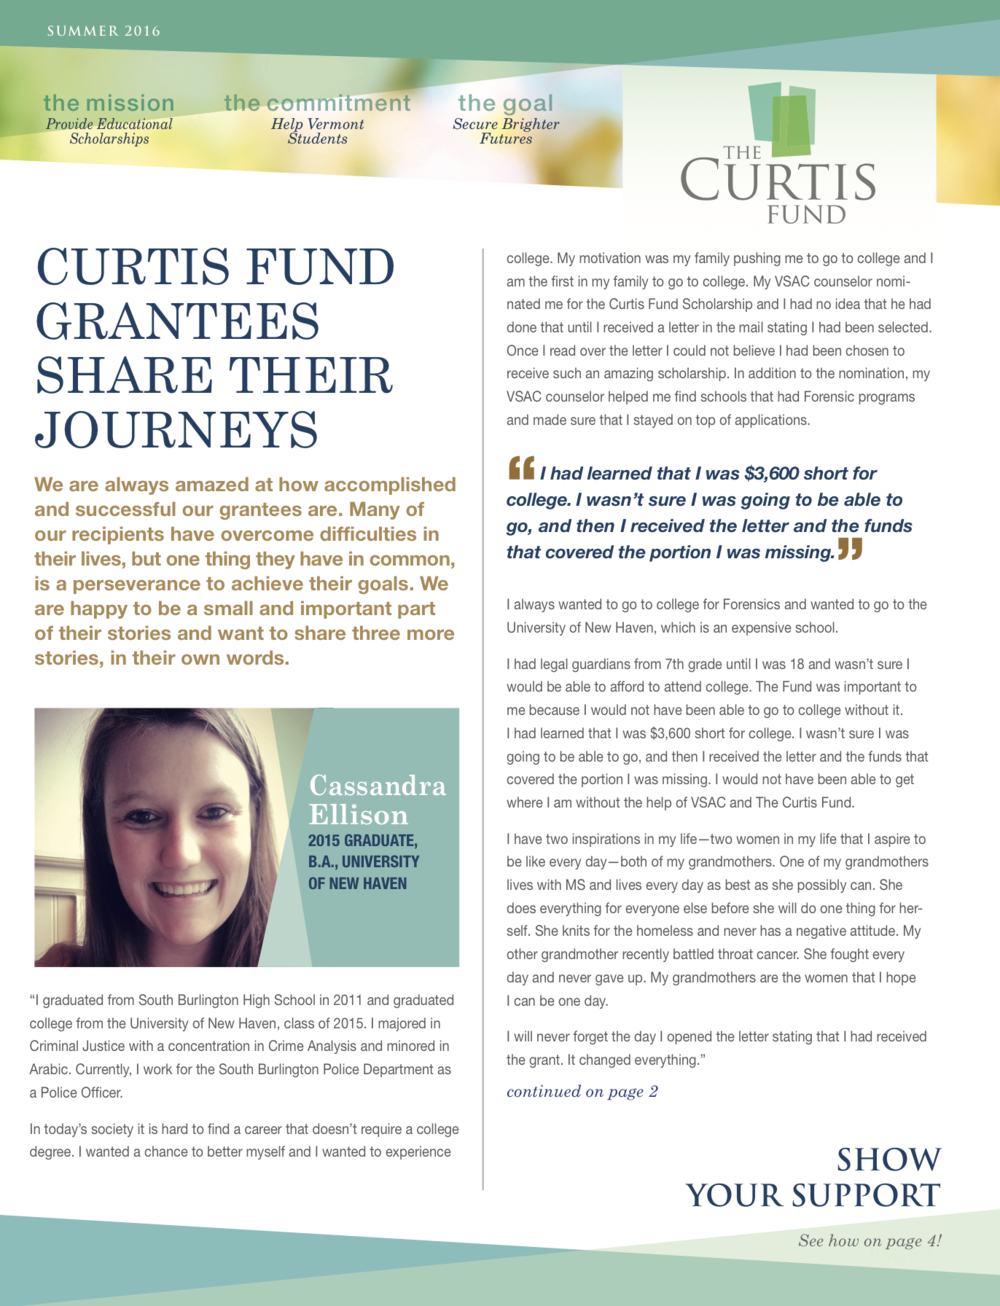 summer 2016 curtis fund newsletter cover